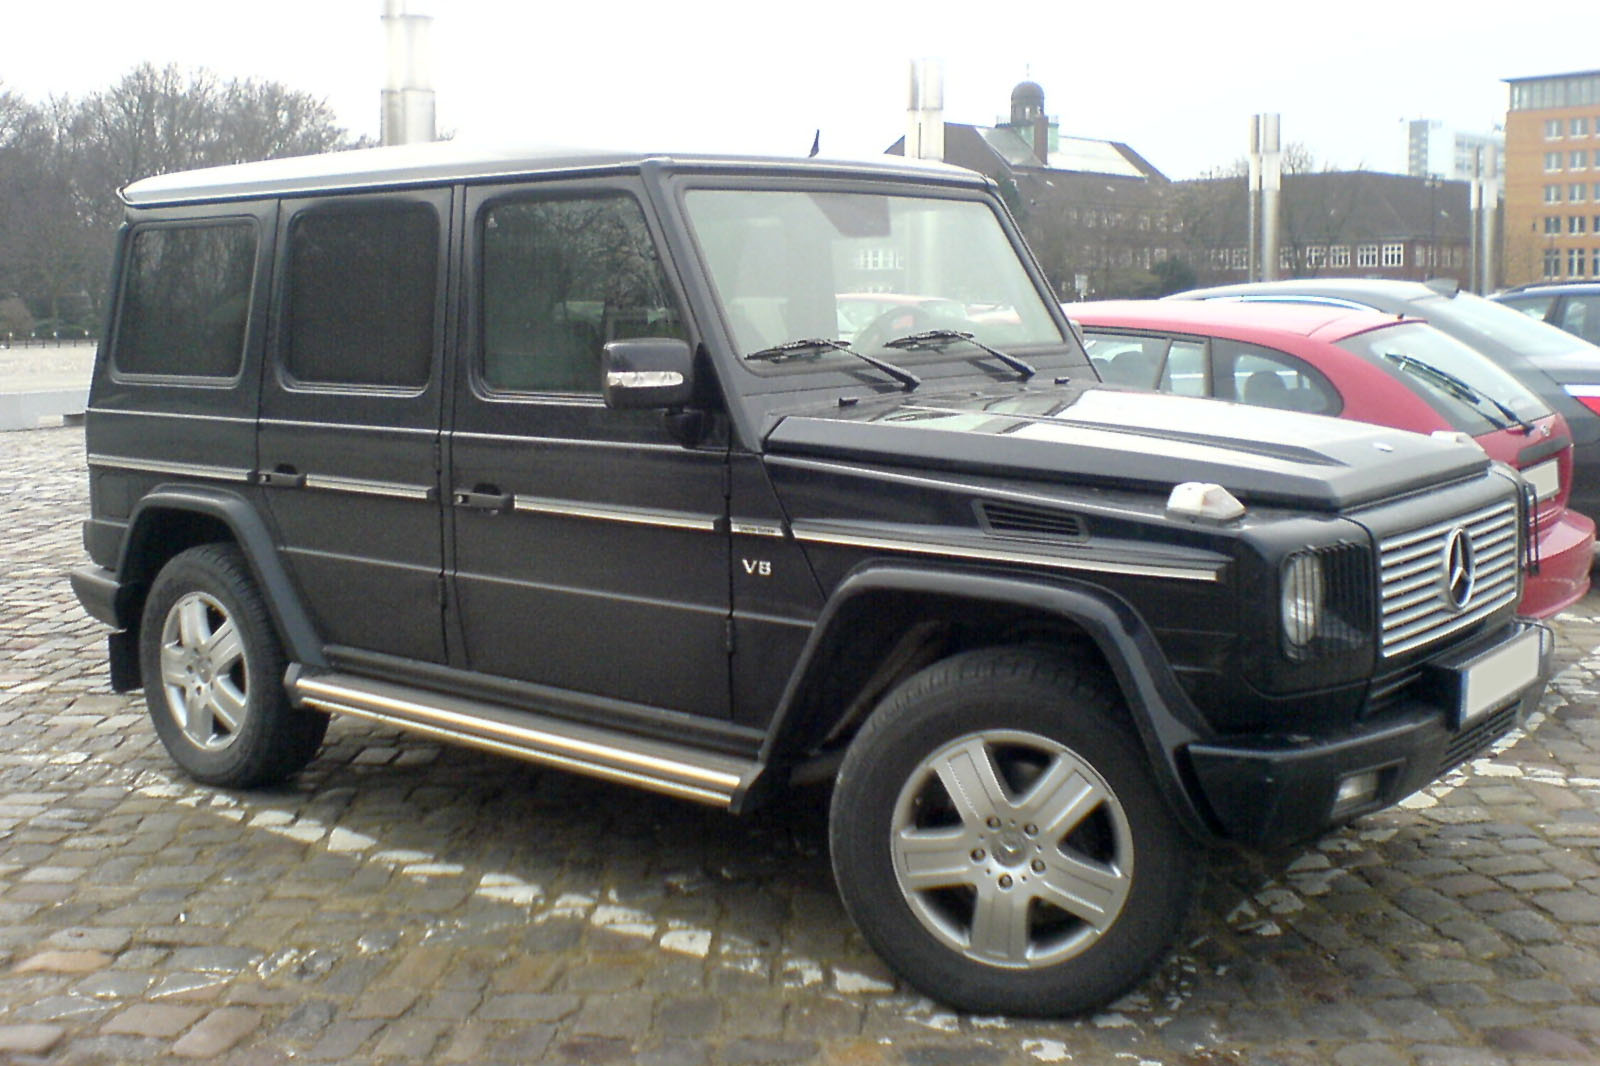 file mercedes benz g 400 cdi limited edition wikimedia commons. Black Bedroom Furniture Sets. Home Design Ideas